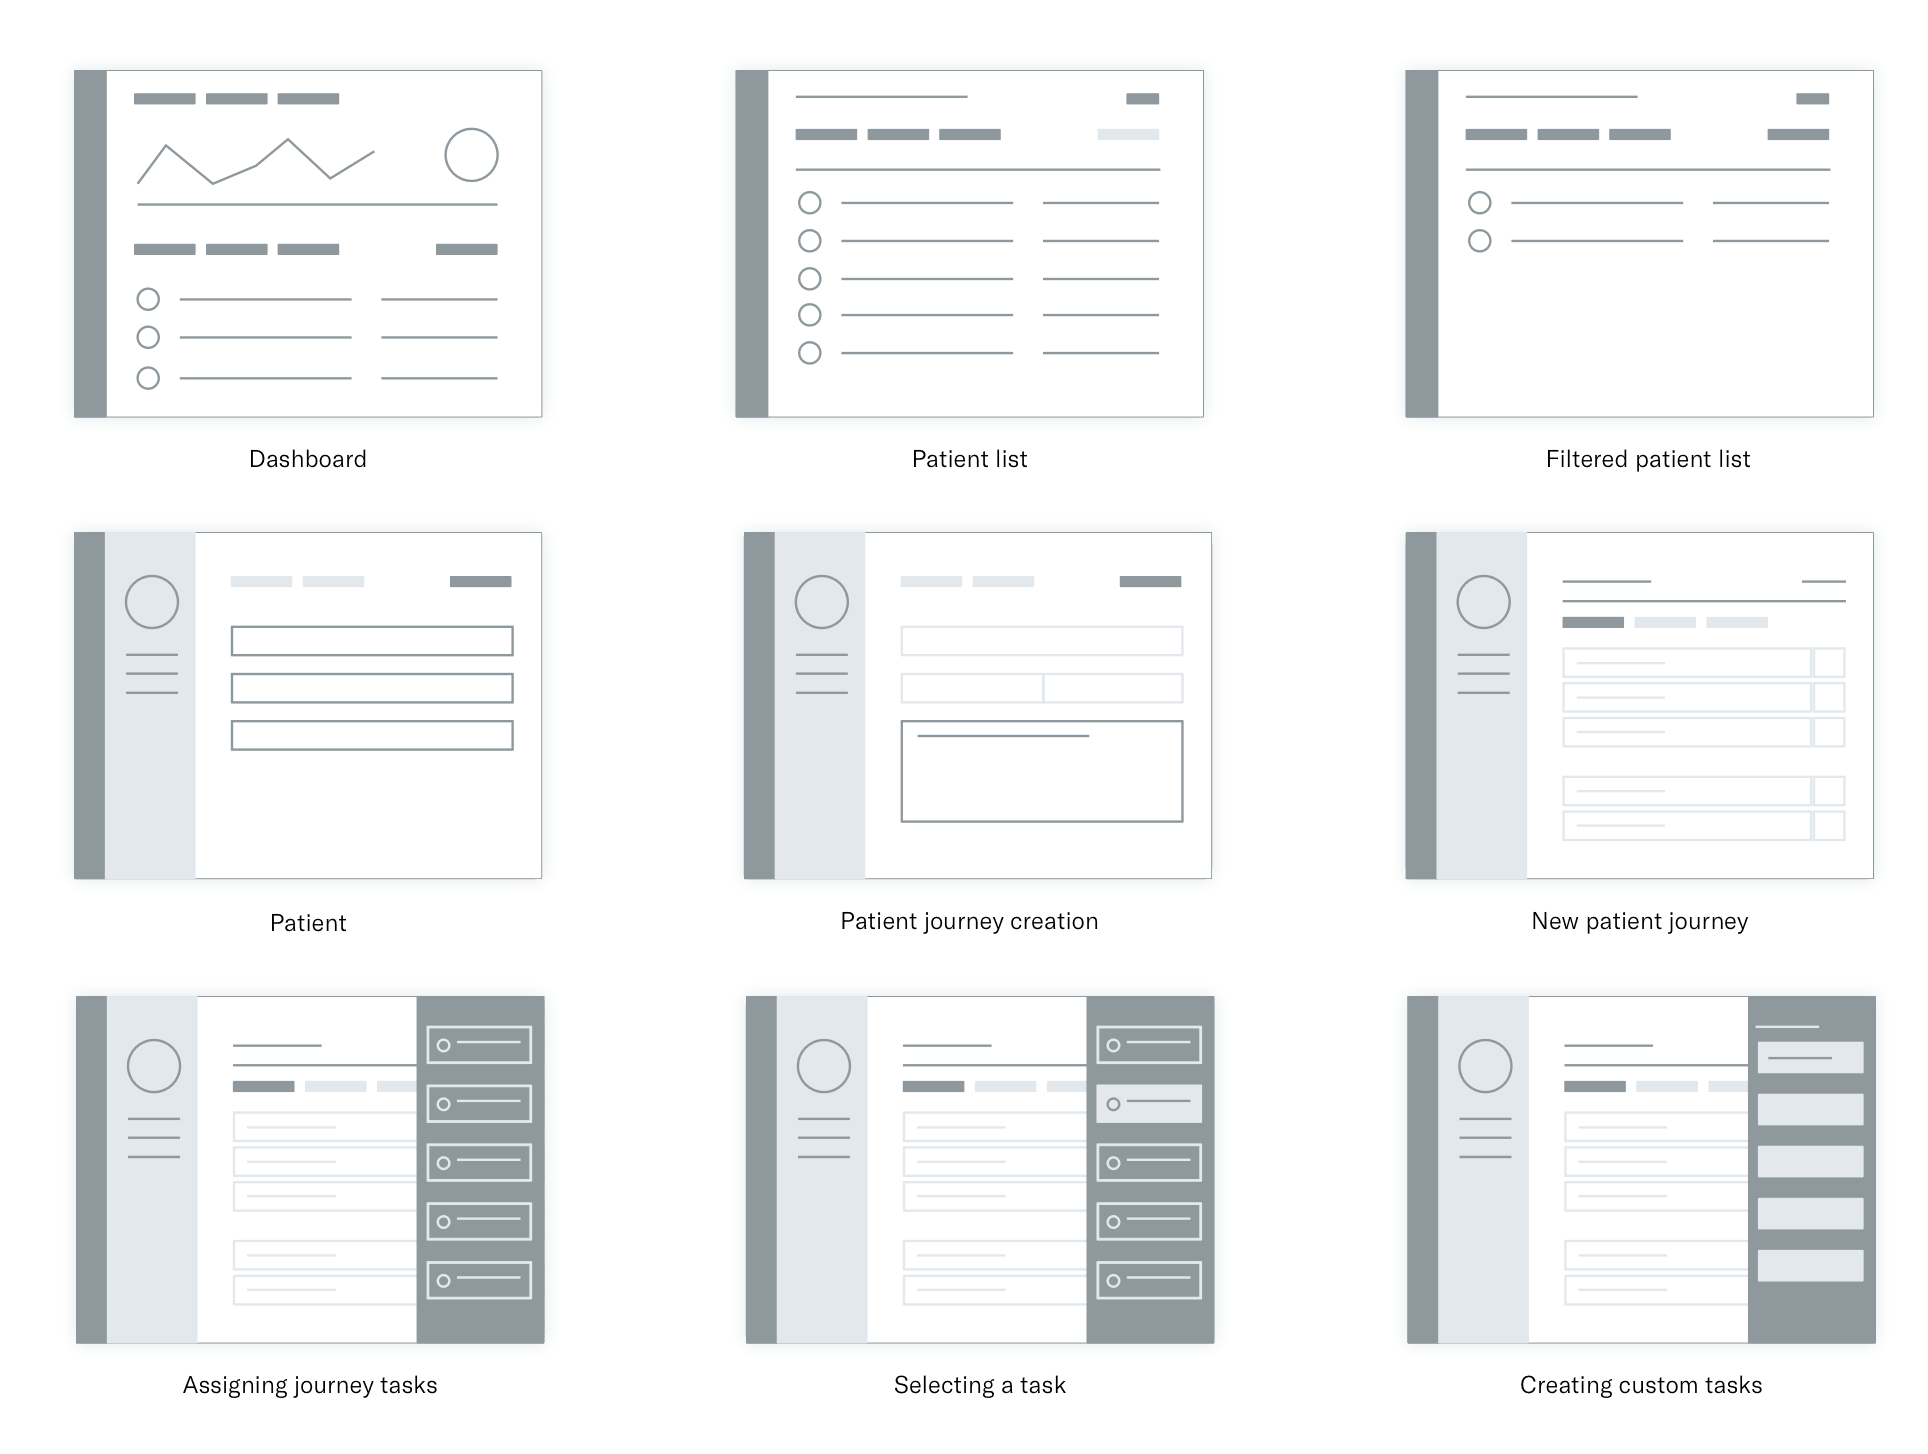 wireframes of Docent journey creation